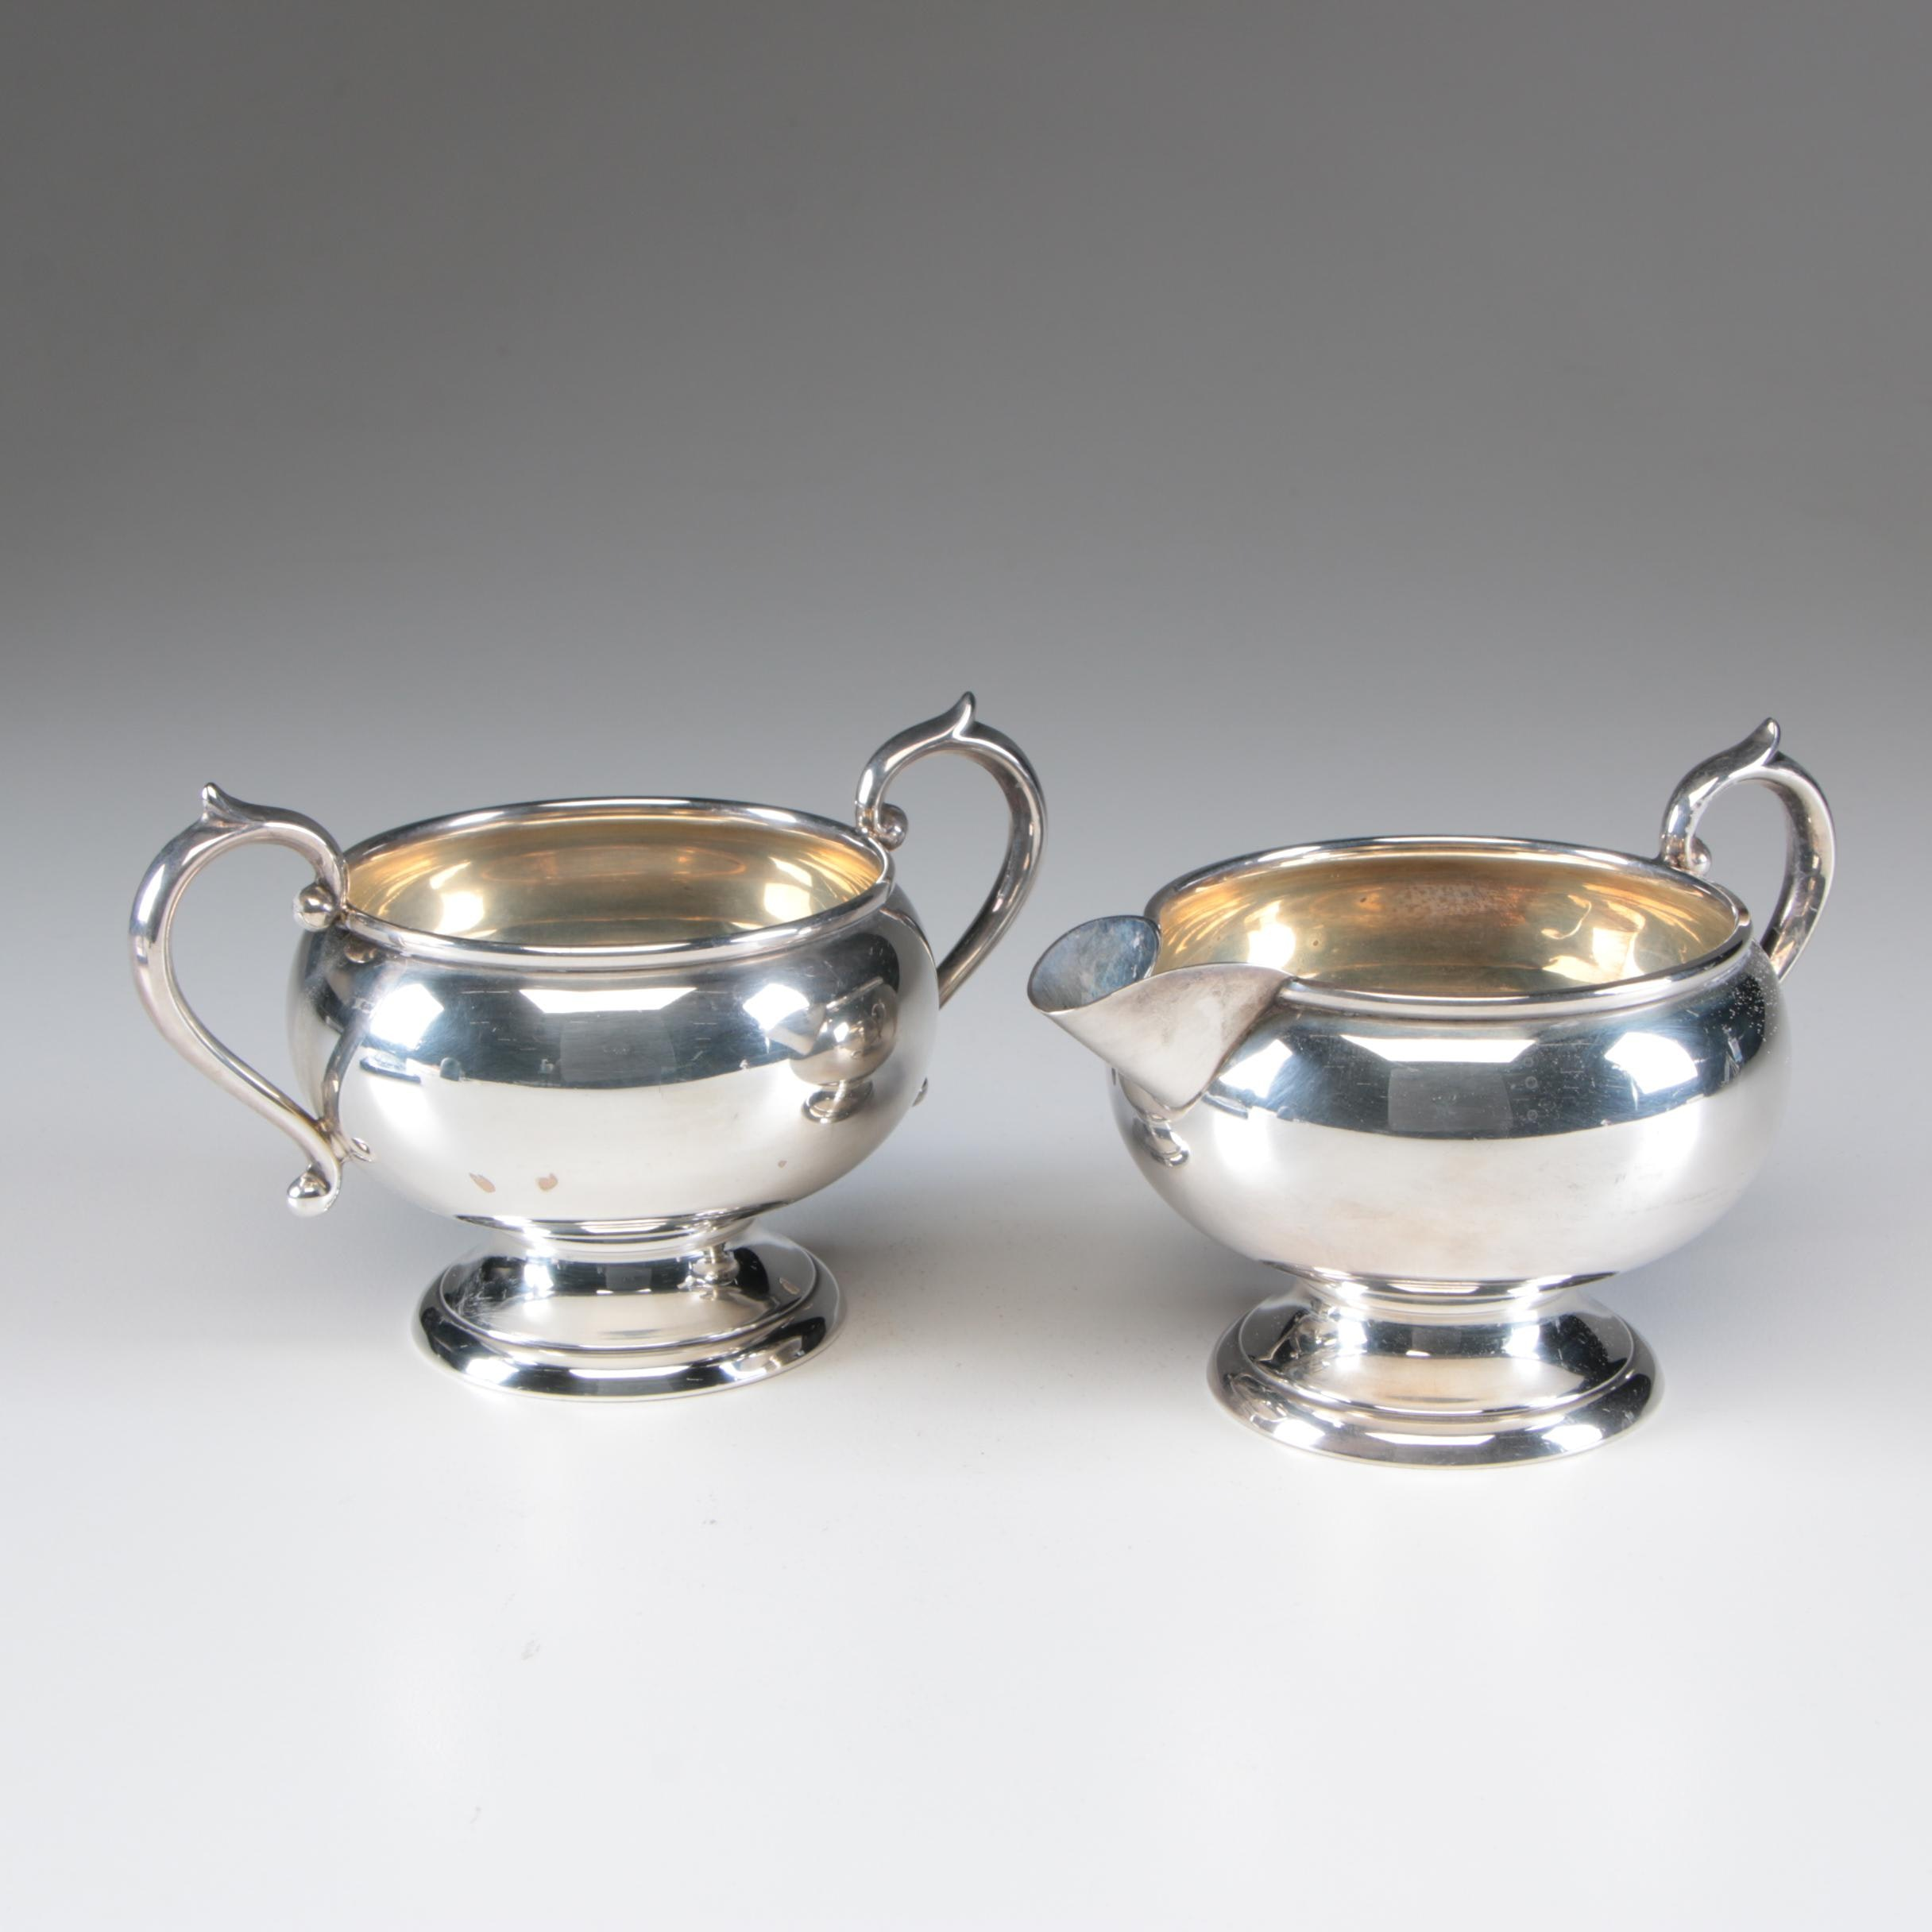 F. B. Rogers Silver Co. Sterling Silver Creamer and Open Sugar Bowl